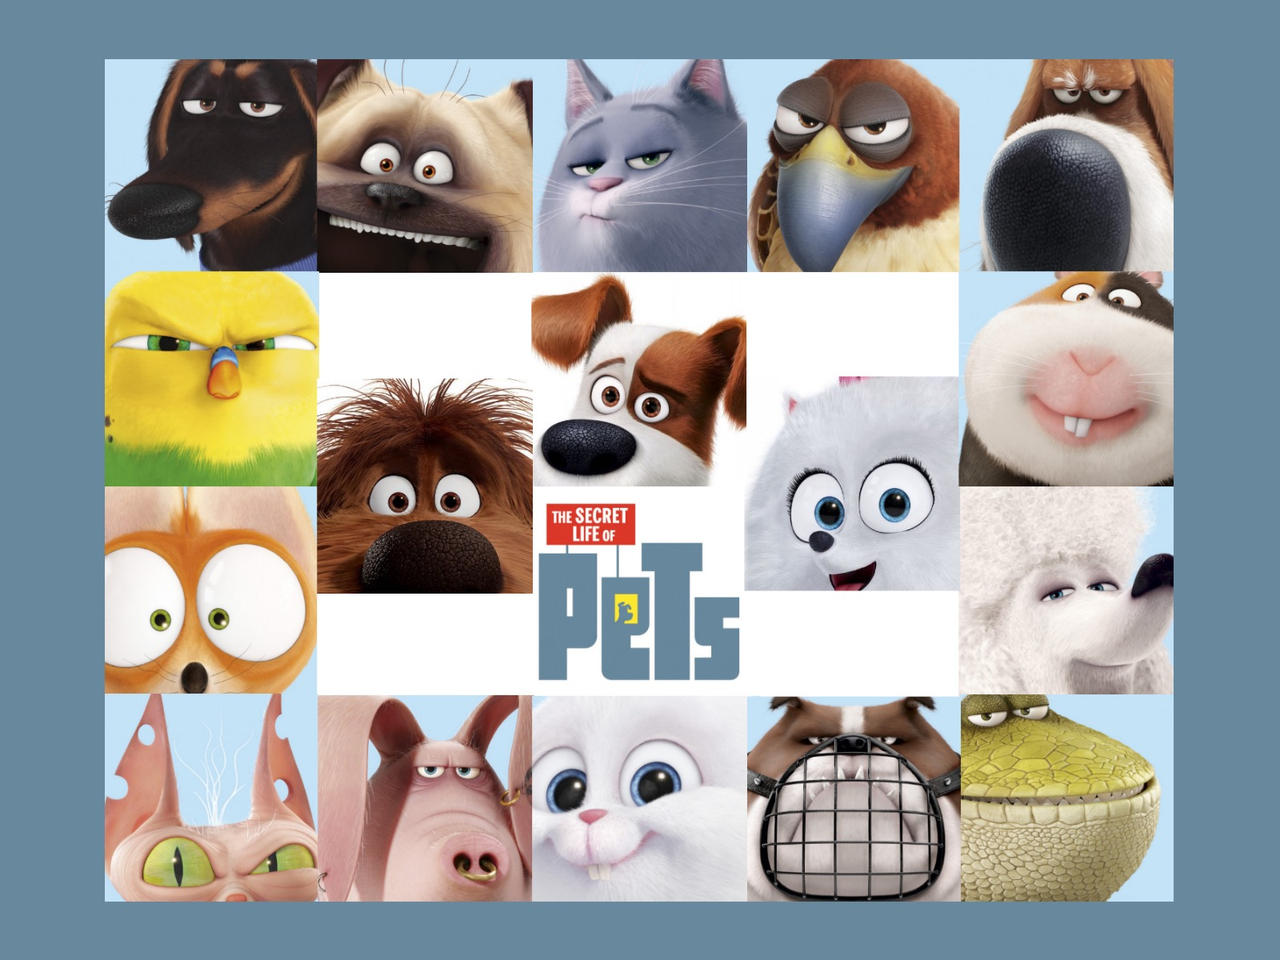 Secret Life Of Pets Wallpaper: The Secret Life Of Pets Wallpaper By Peachmog On DeviantArt